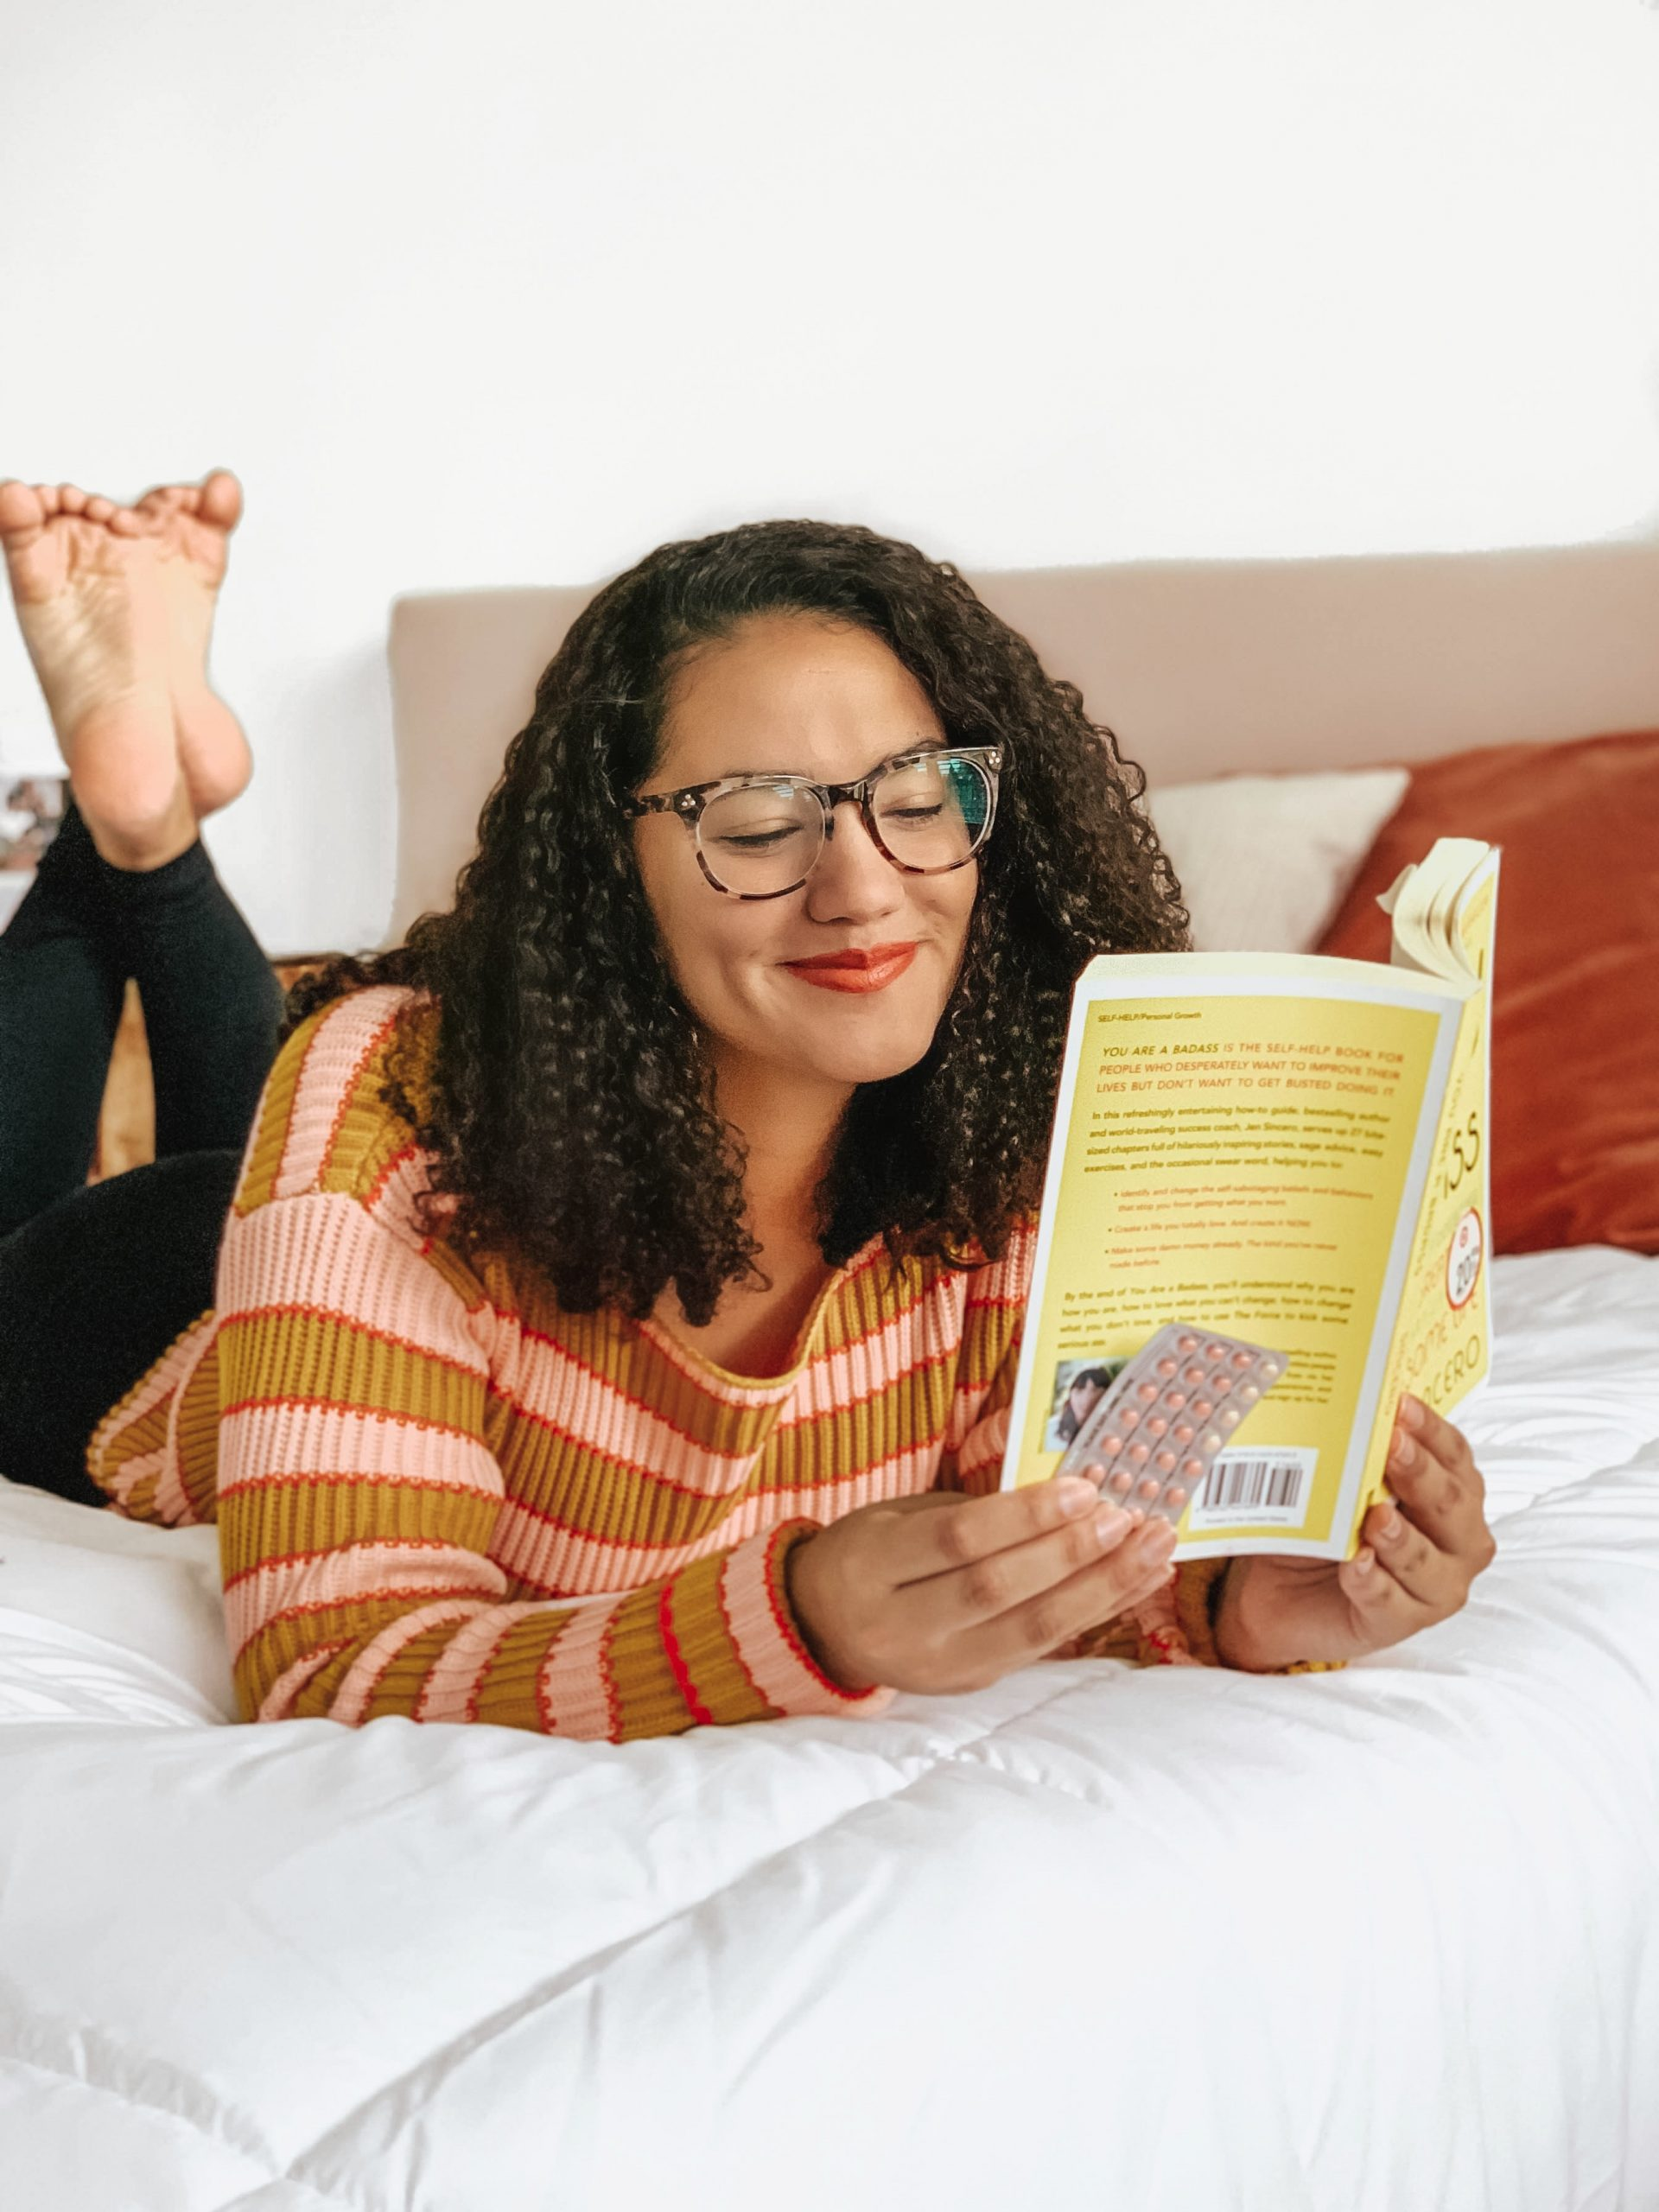 Girl Reading Book on a Bed. She is wearing glasses, a striped sweater, black leggings and is on a white comforter.